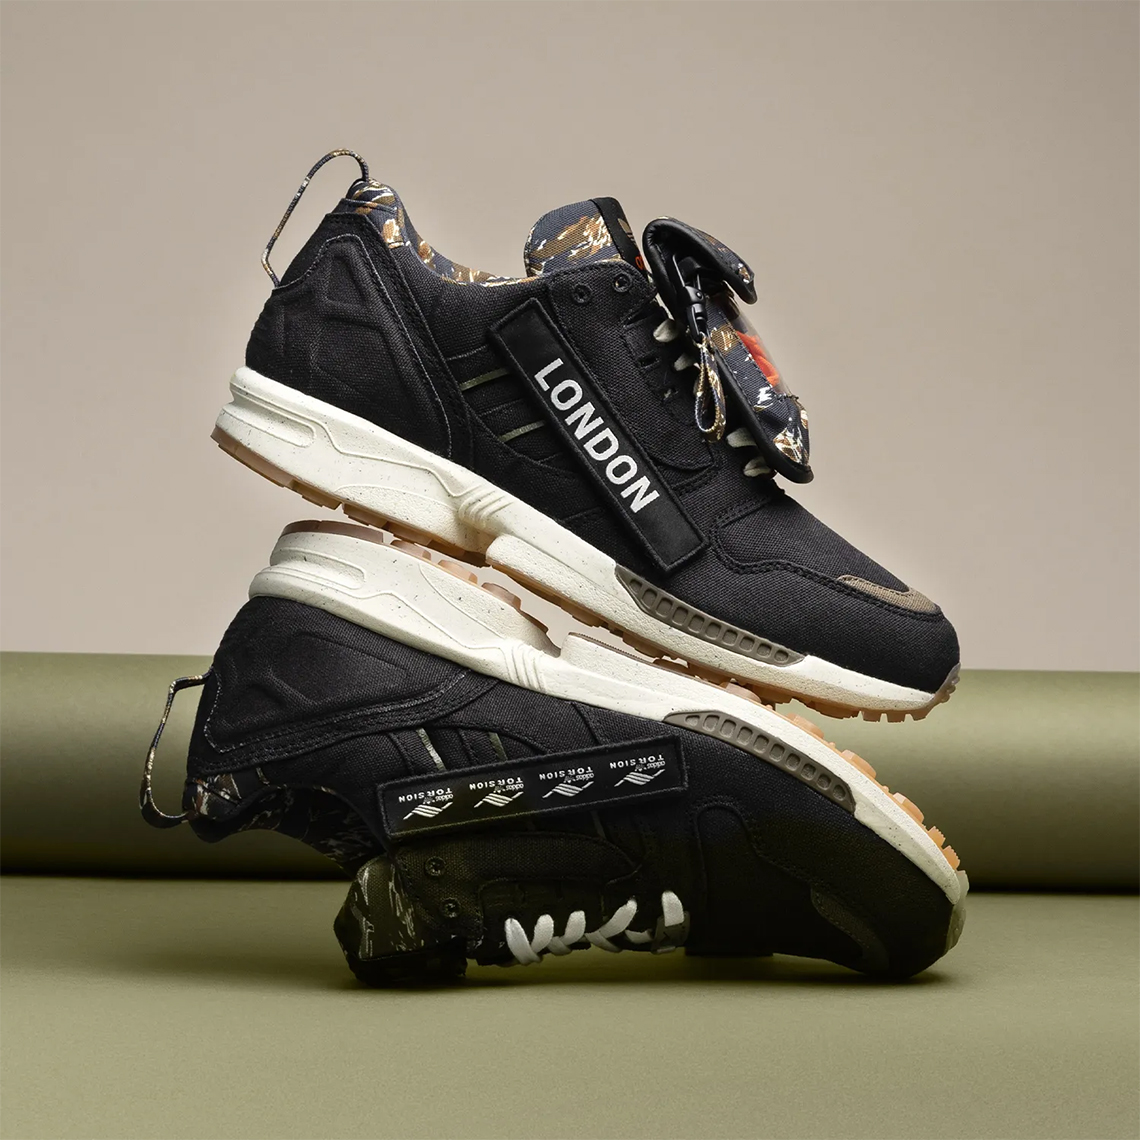 adidas-ZX-8000-Out-There-S42592-3.jpg?w=1140